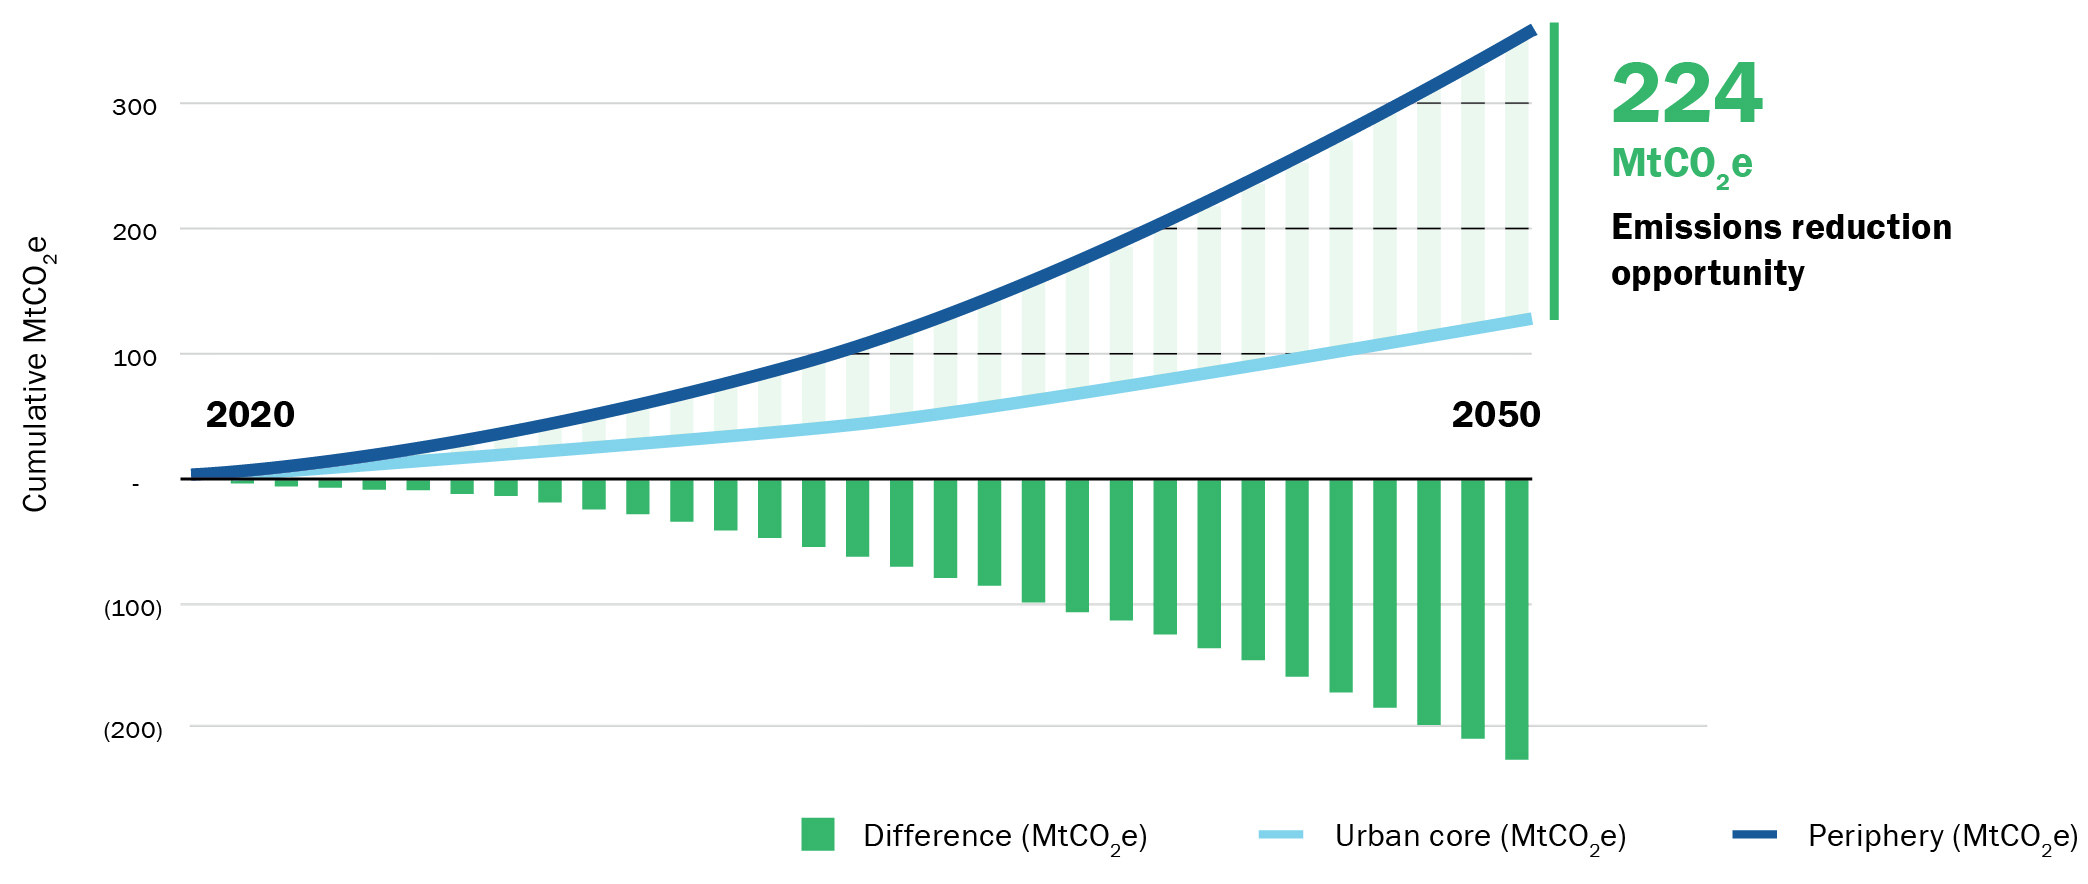 A ground-breaking South African study by Divercity and GBCSA reveals that the location of housing development is key to lowering carbon emissions.